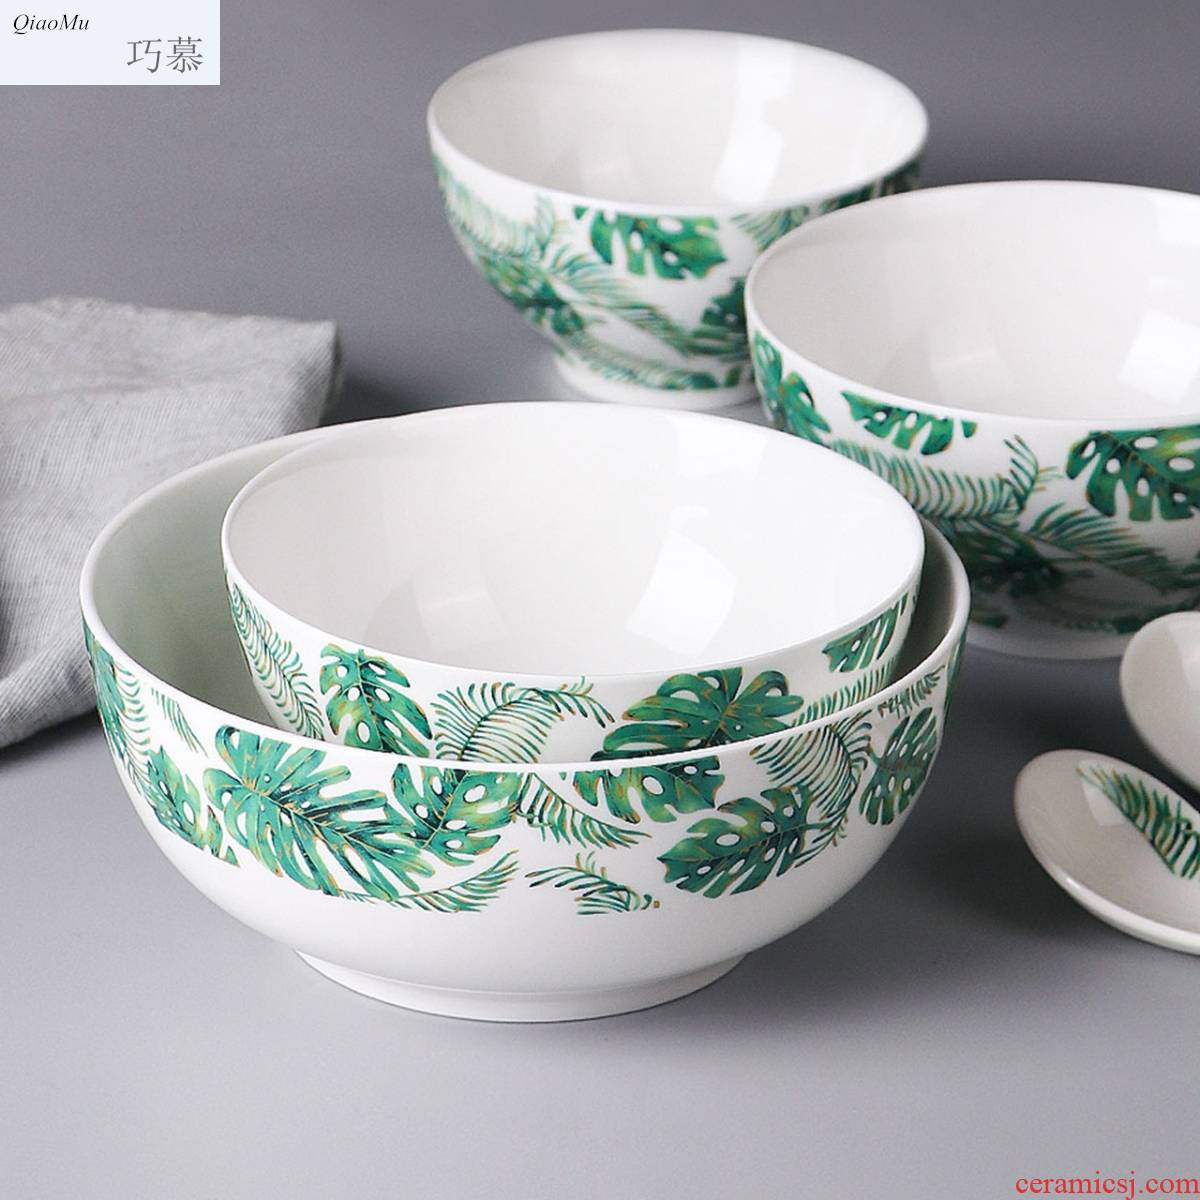 Qiao mu Chinese eat rice bowl household new ipads China tableware single creative small bowl of jingdezhen ceramic large - sized rainbow such use